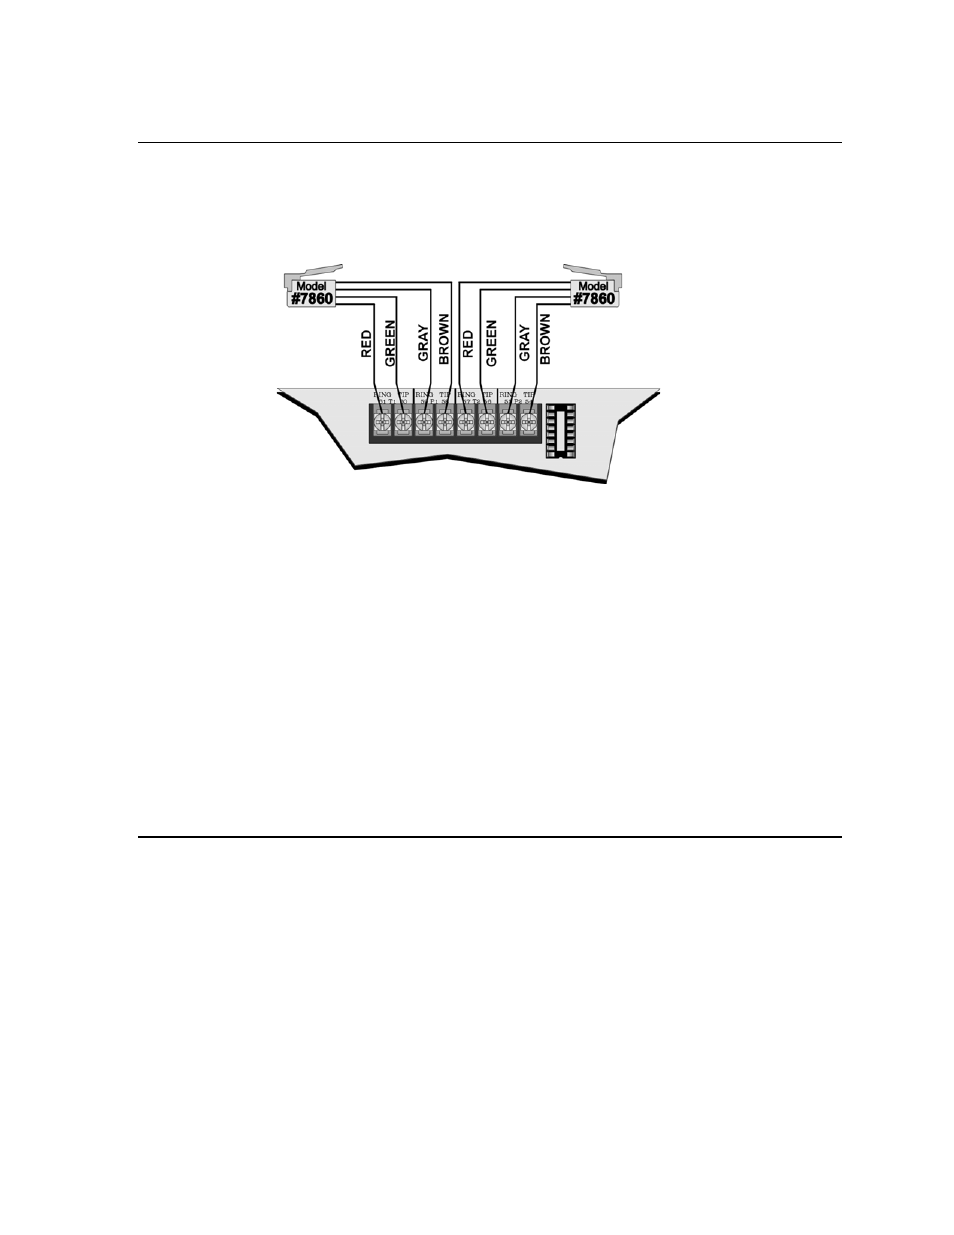 hight resolution of 10 telephone line connection 11 detector installation 1 class a style d zones silentknight sk 5208 conventional facp 10 30 zone user manual page 20